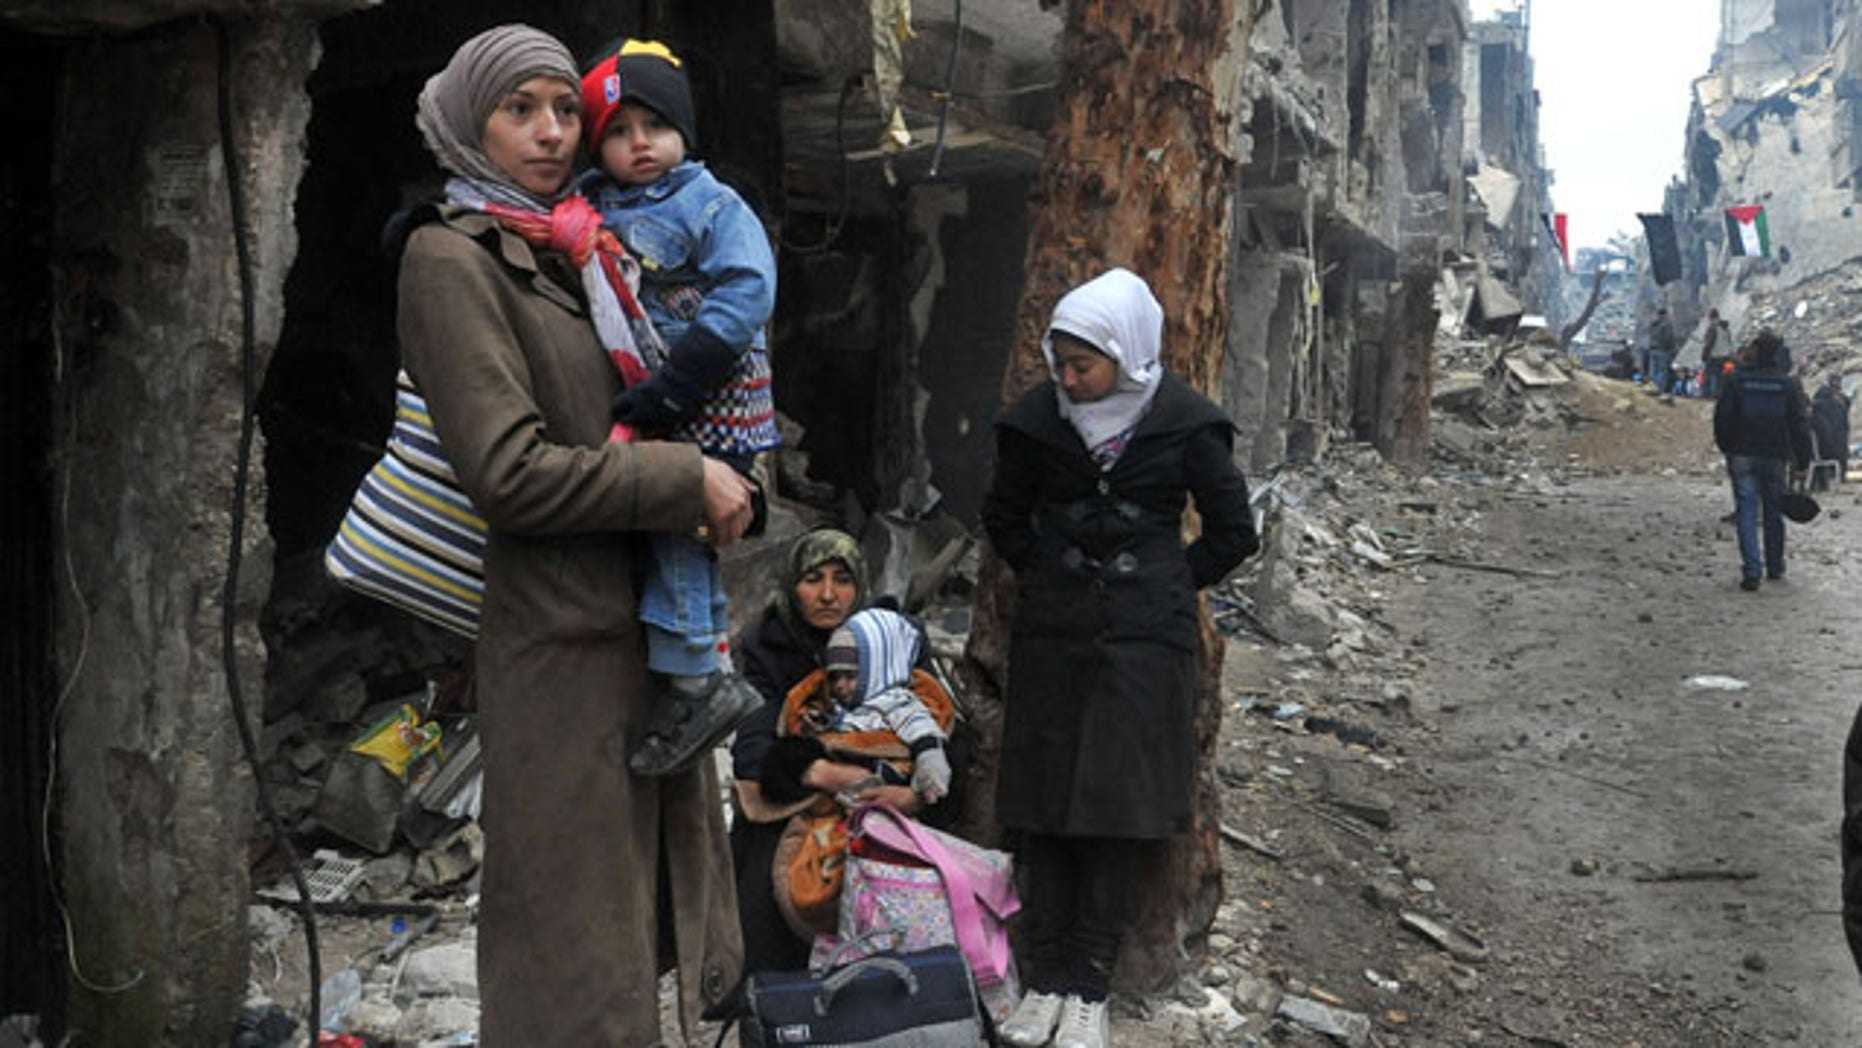 February 4, 2014: In this photo released by the Syrian official news agency SANA, residents of the besieged Yarmouk Palestinian refugee camp wait to leave the camp, on the southern edge of Damascus. Over the past six days the U.N. continued to distribute food parcels in the Palestinian camp where activists say at least 85 people have died as a result of lack of food and medicine since mid-2013. (AP Photo/SANA)